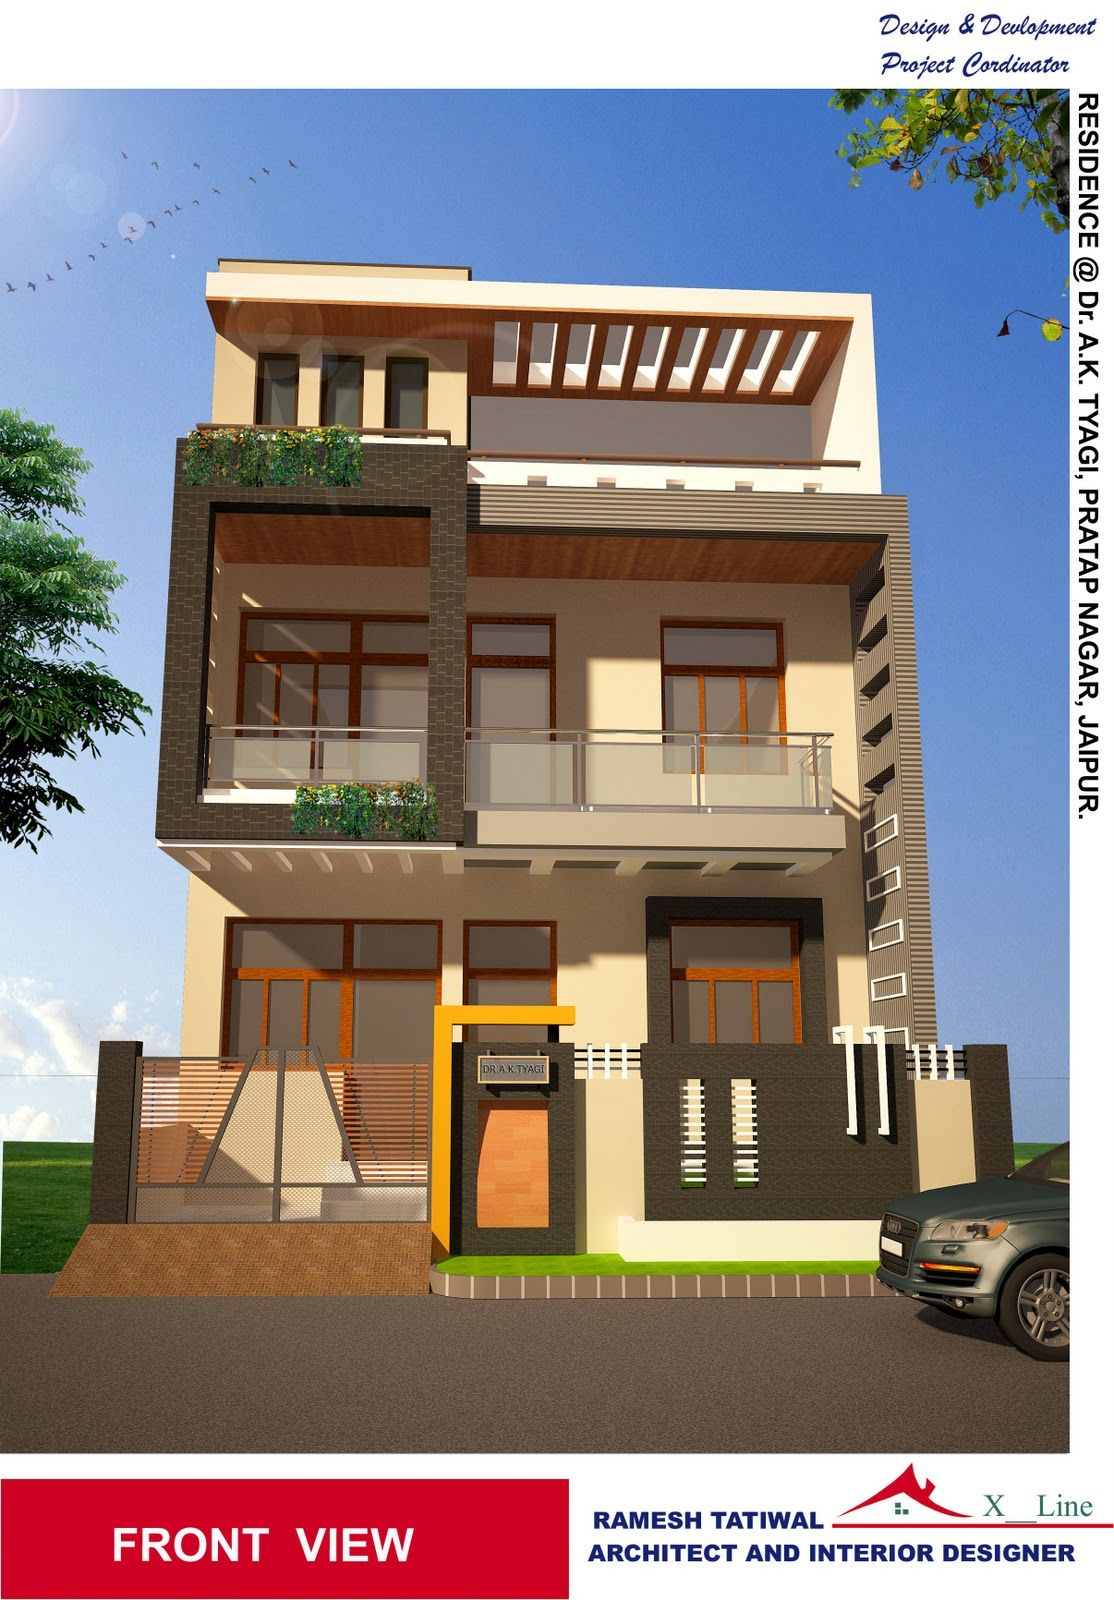 New architectural designs Building plans indian homes